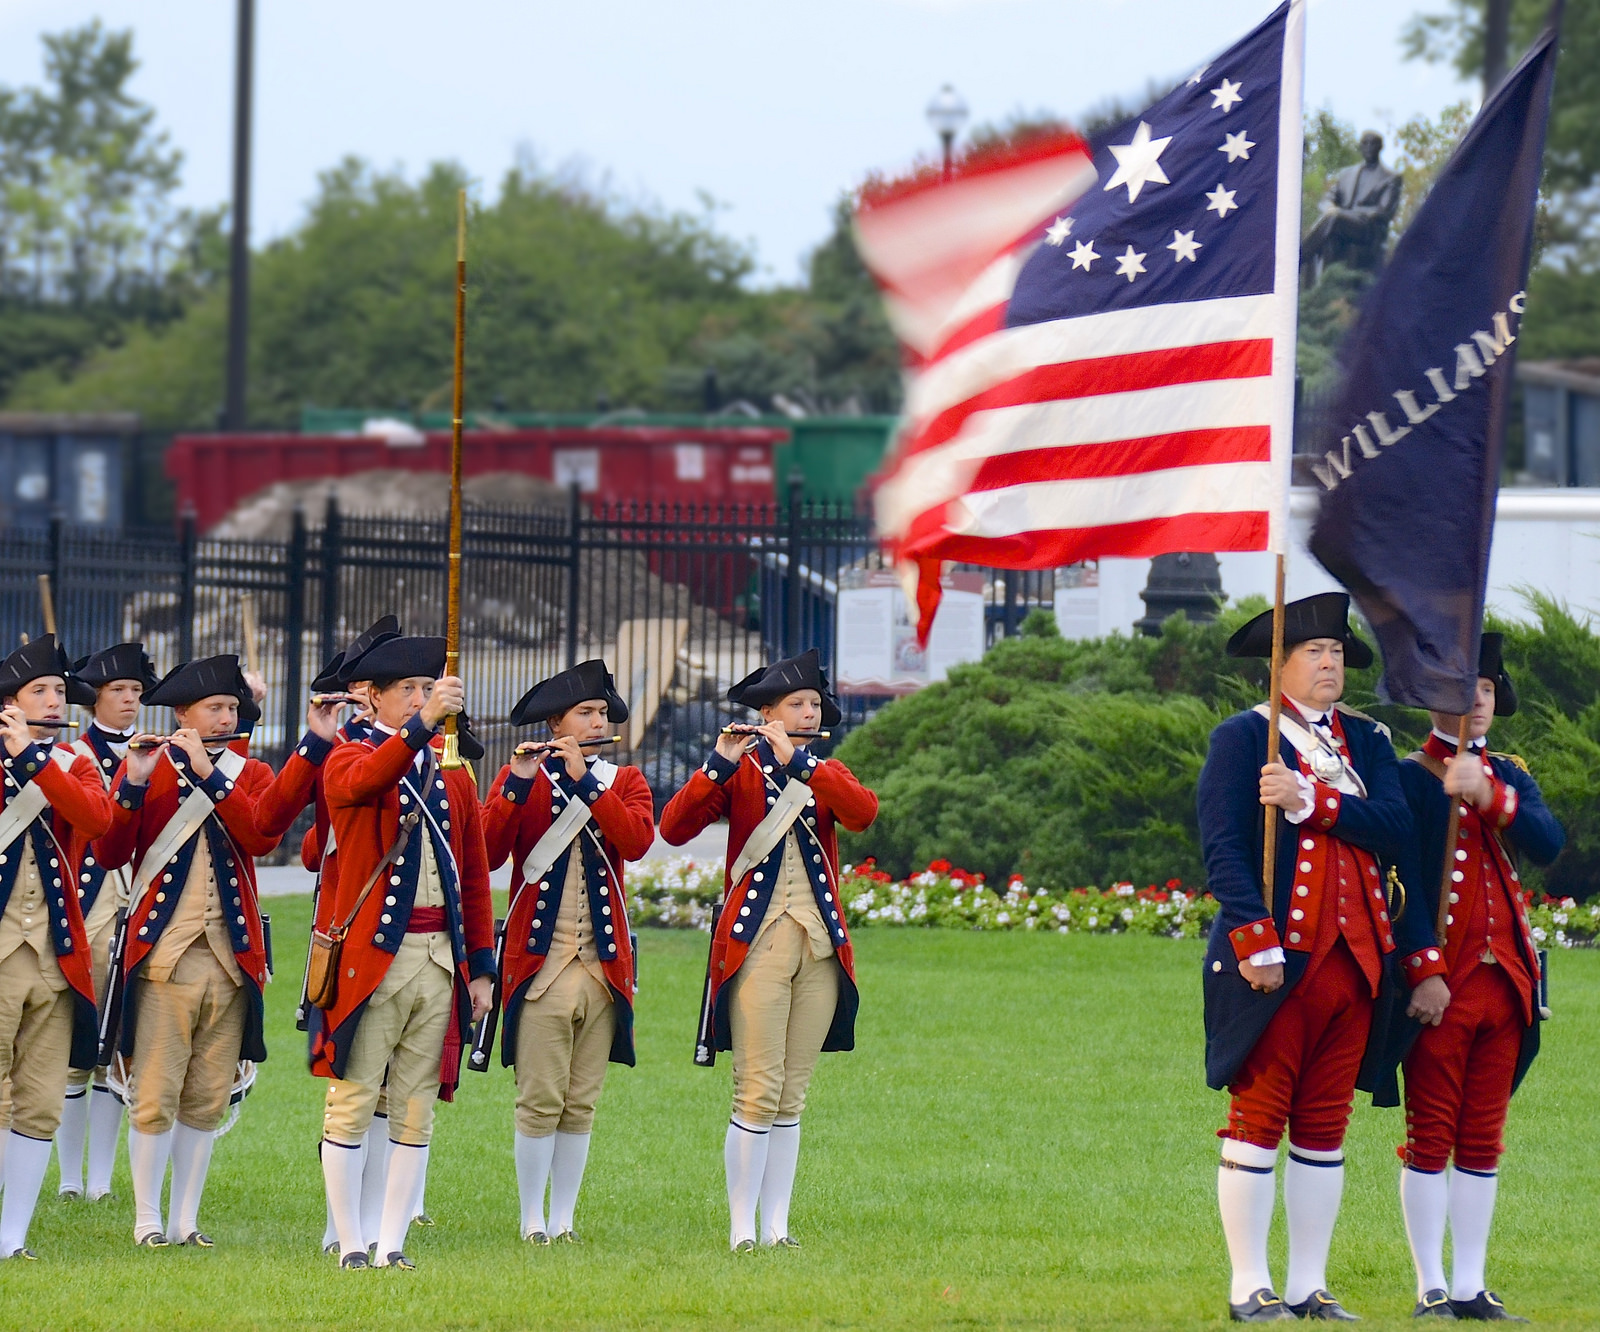 Williamsburg Fife and Drum Corps by Flickr user Jamie McCaffrey (CC BY-NC 2.0)